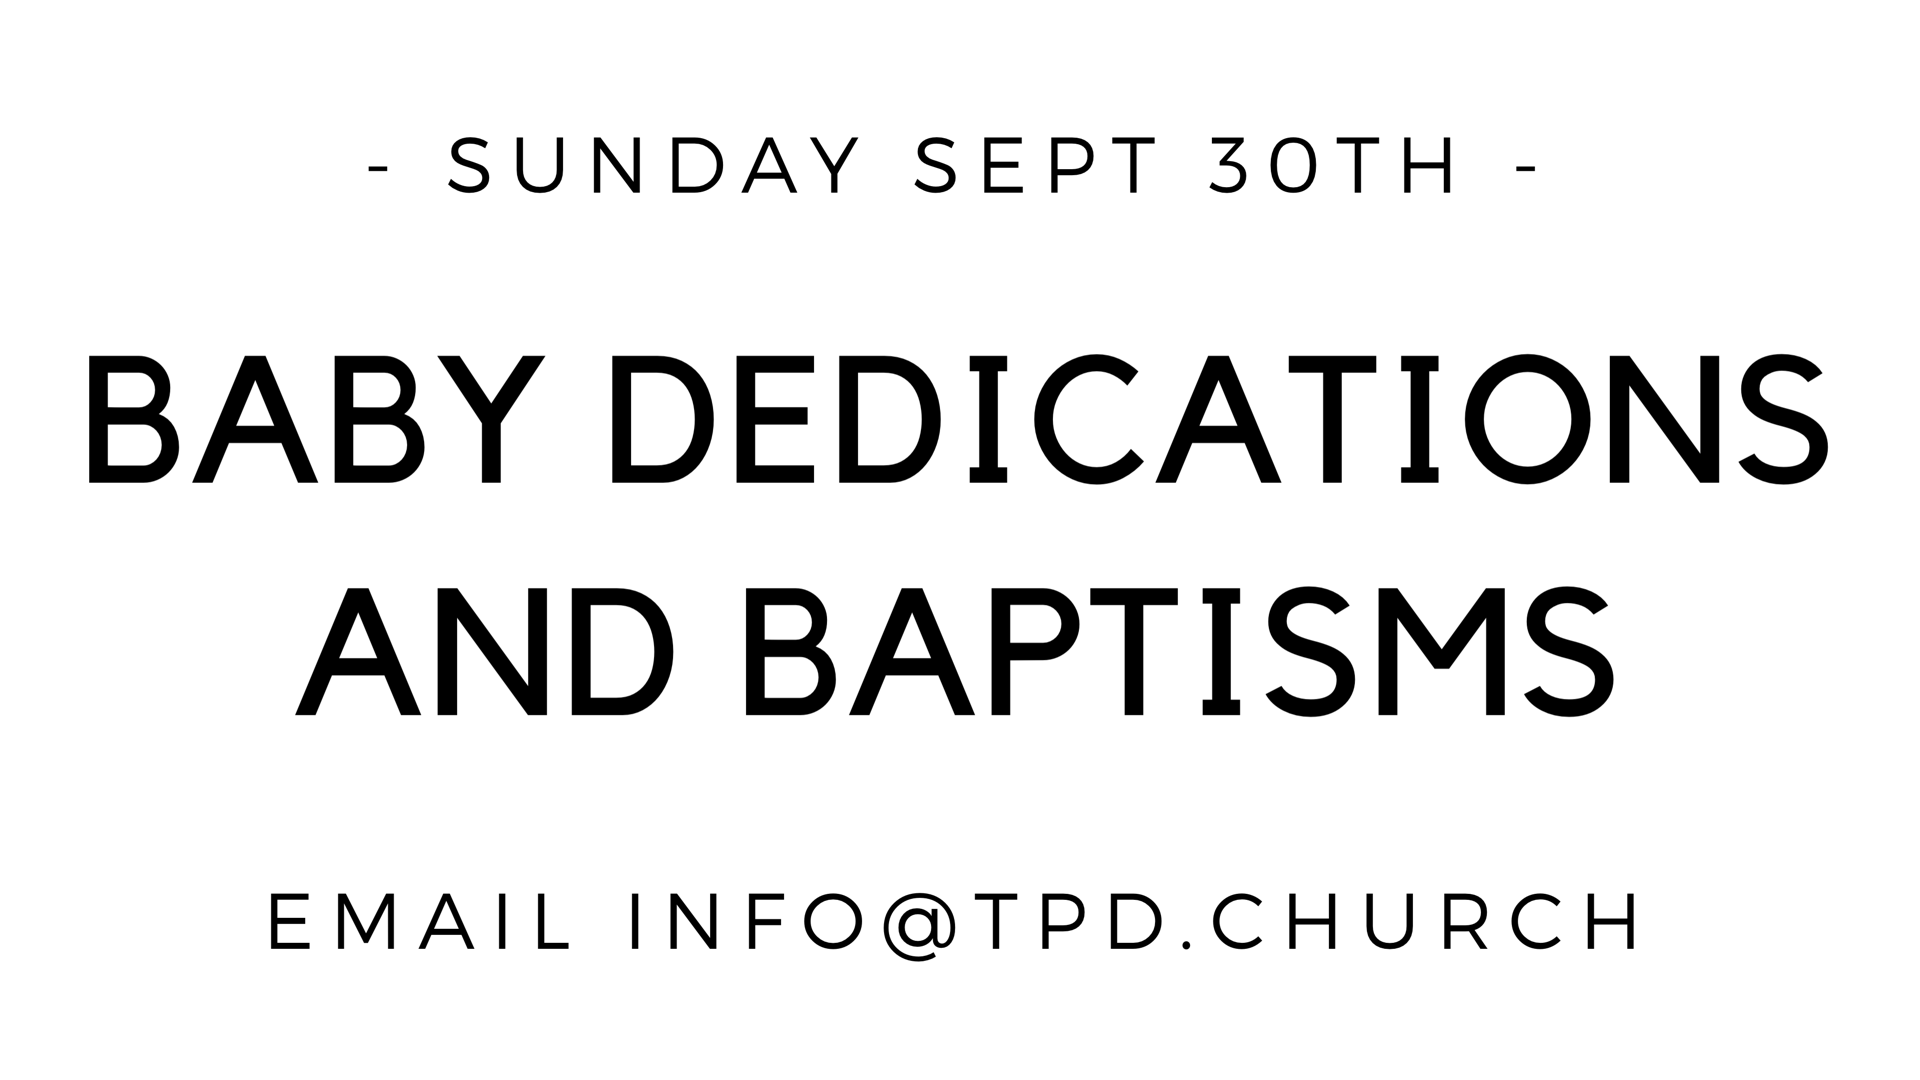 Next Sunday, Sept. 30, we will be dedicating or baptising new babies born into our congregation. If you are the parent of a little one and would like to participate or hear more, please email mark@tpd.church.